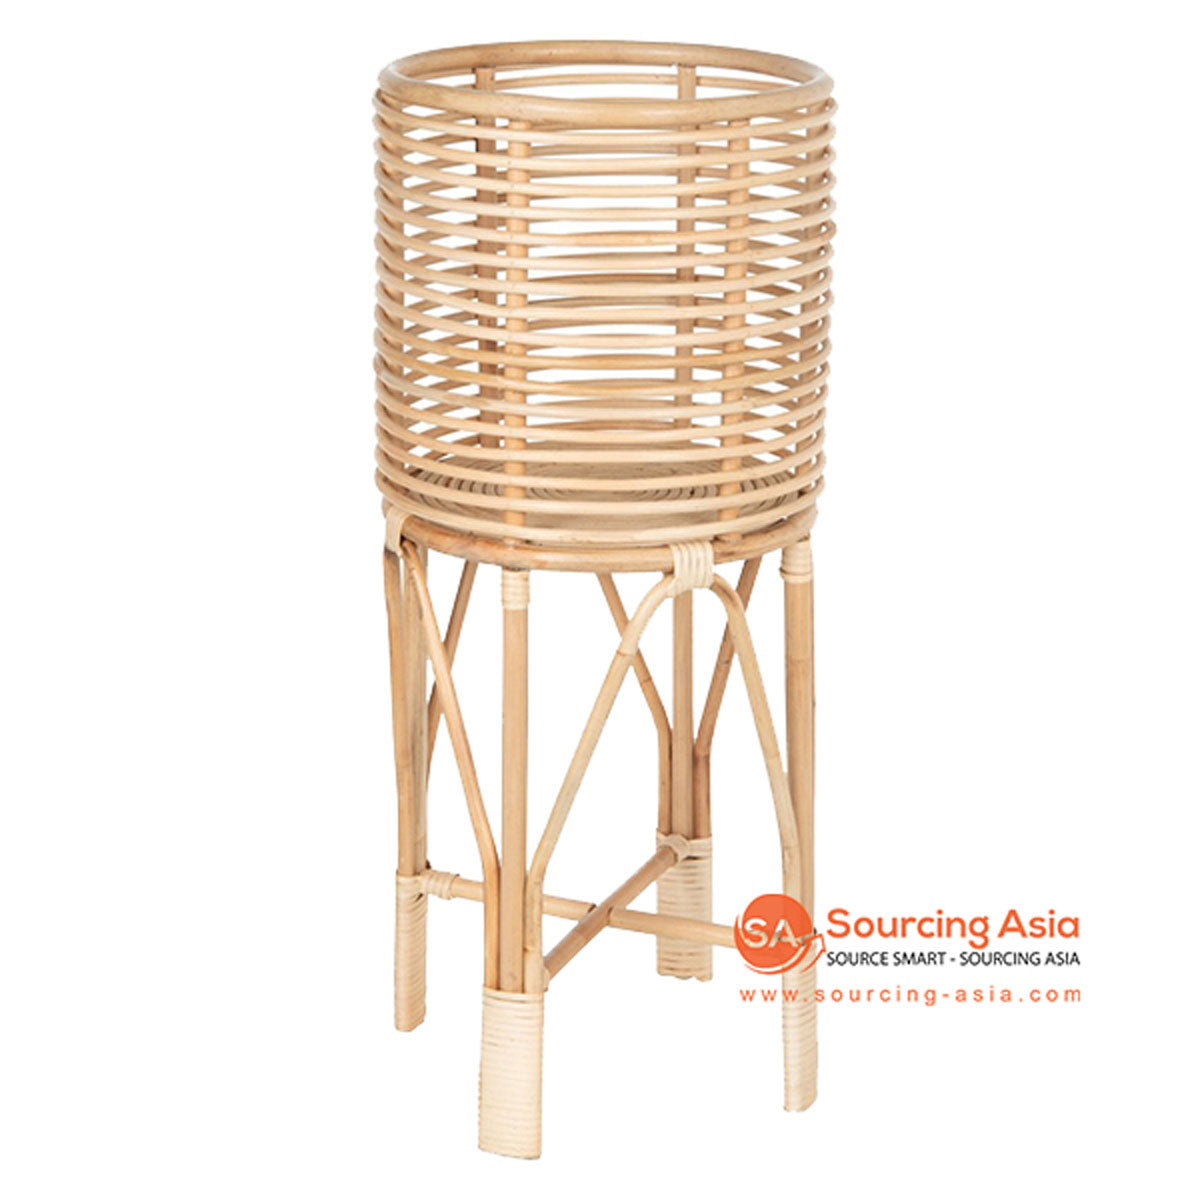 SHL088 NATURAL RATTAN ROUND PLANTER